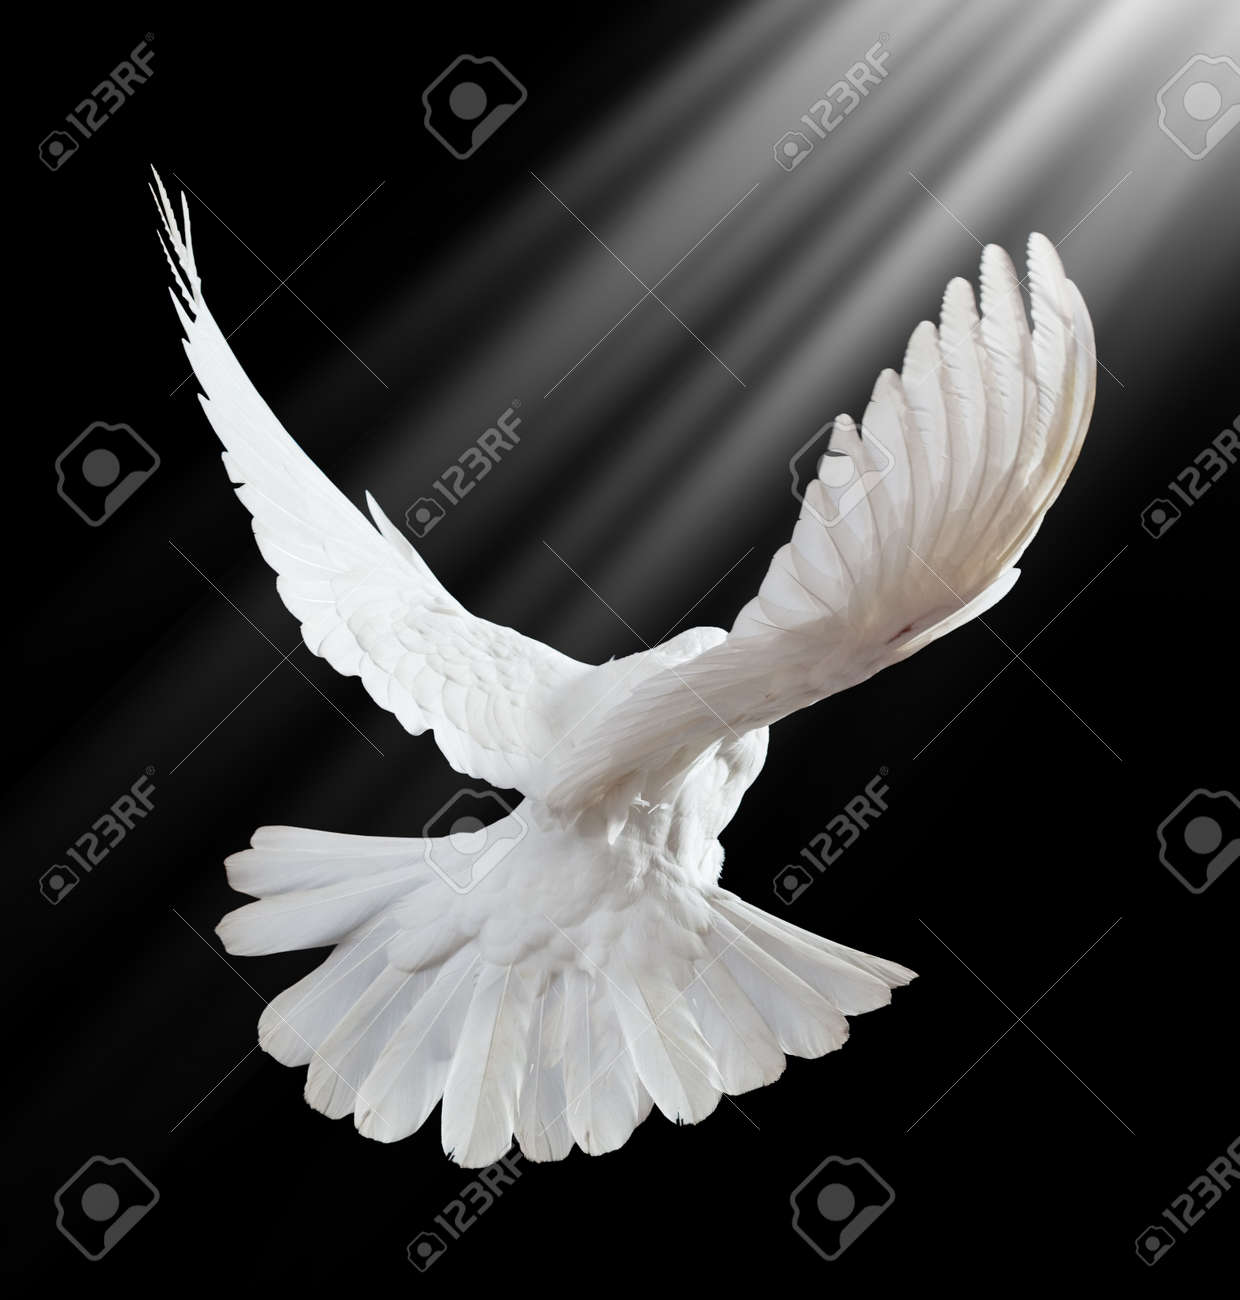 A free flying white dove isolated on a black background Stock Photo - 7478296